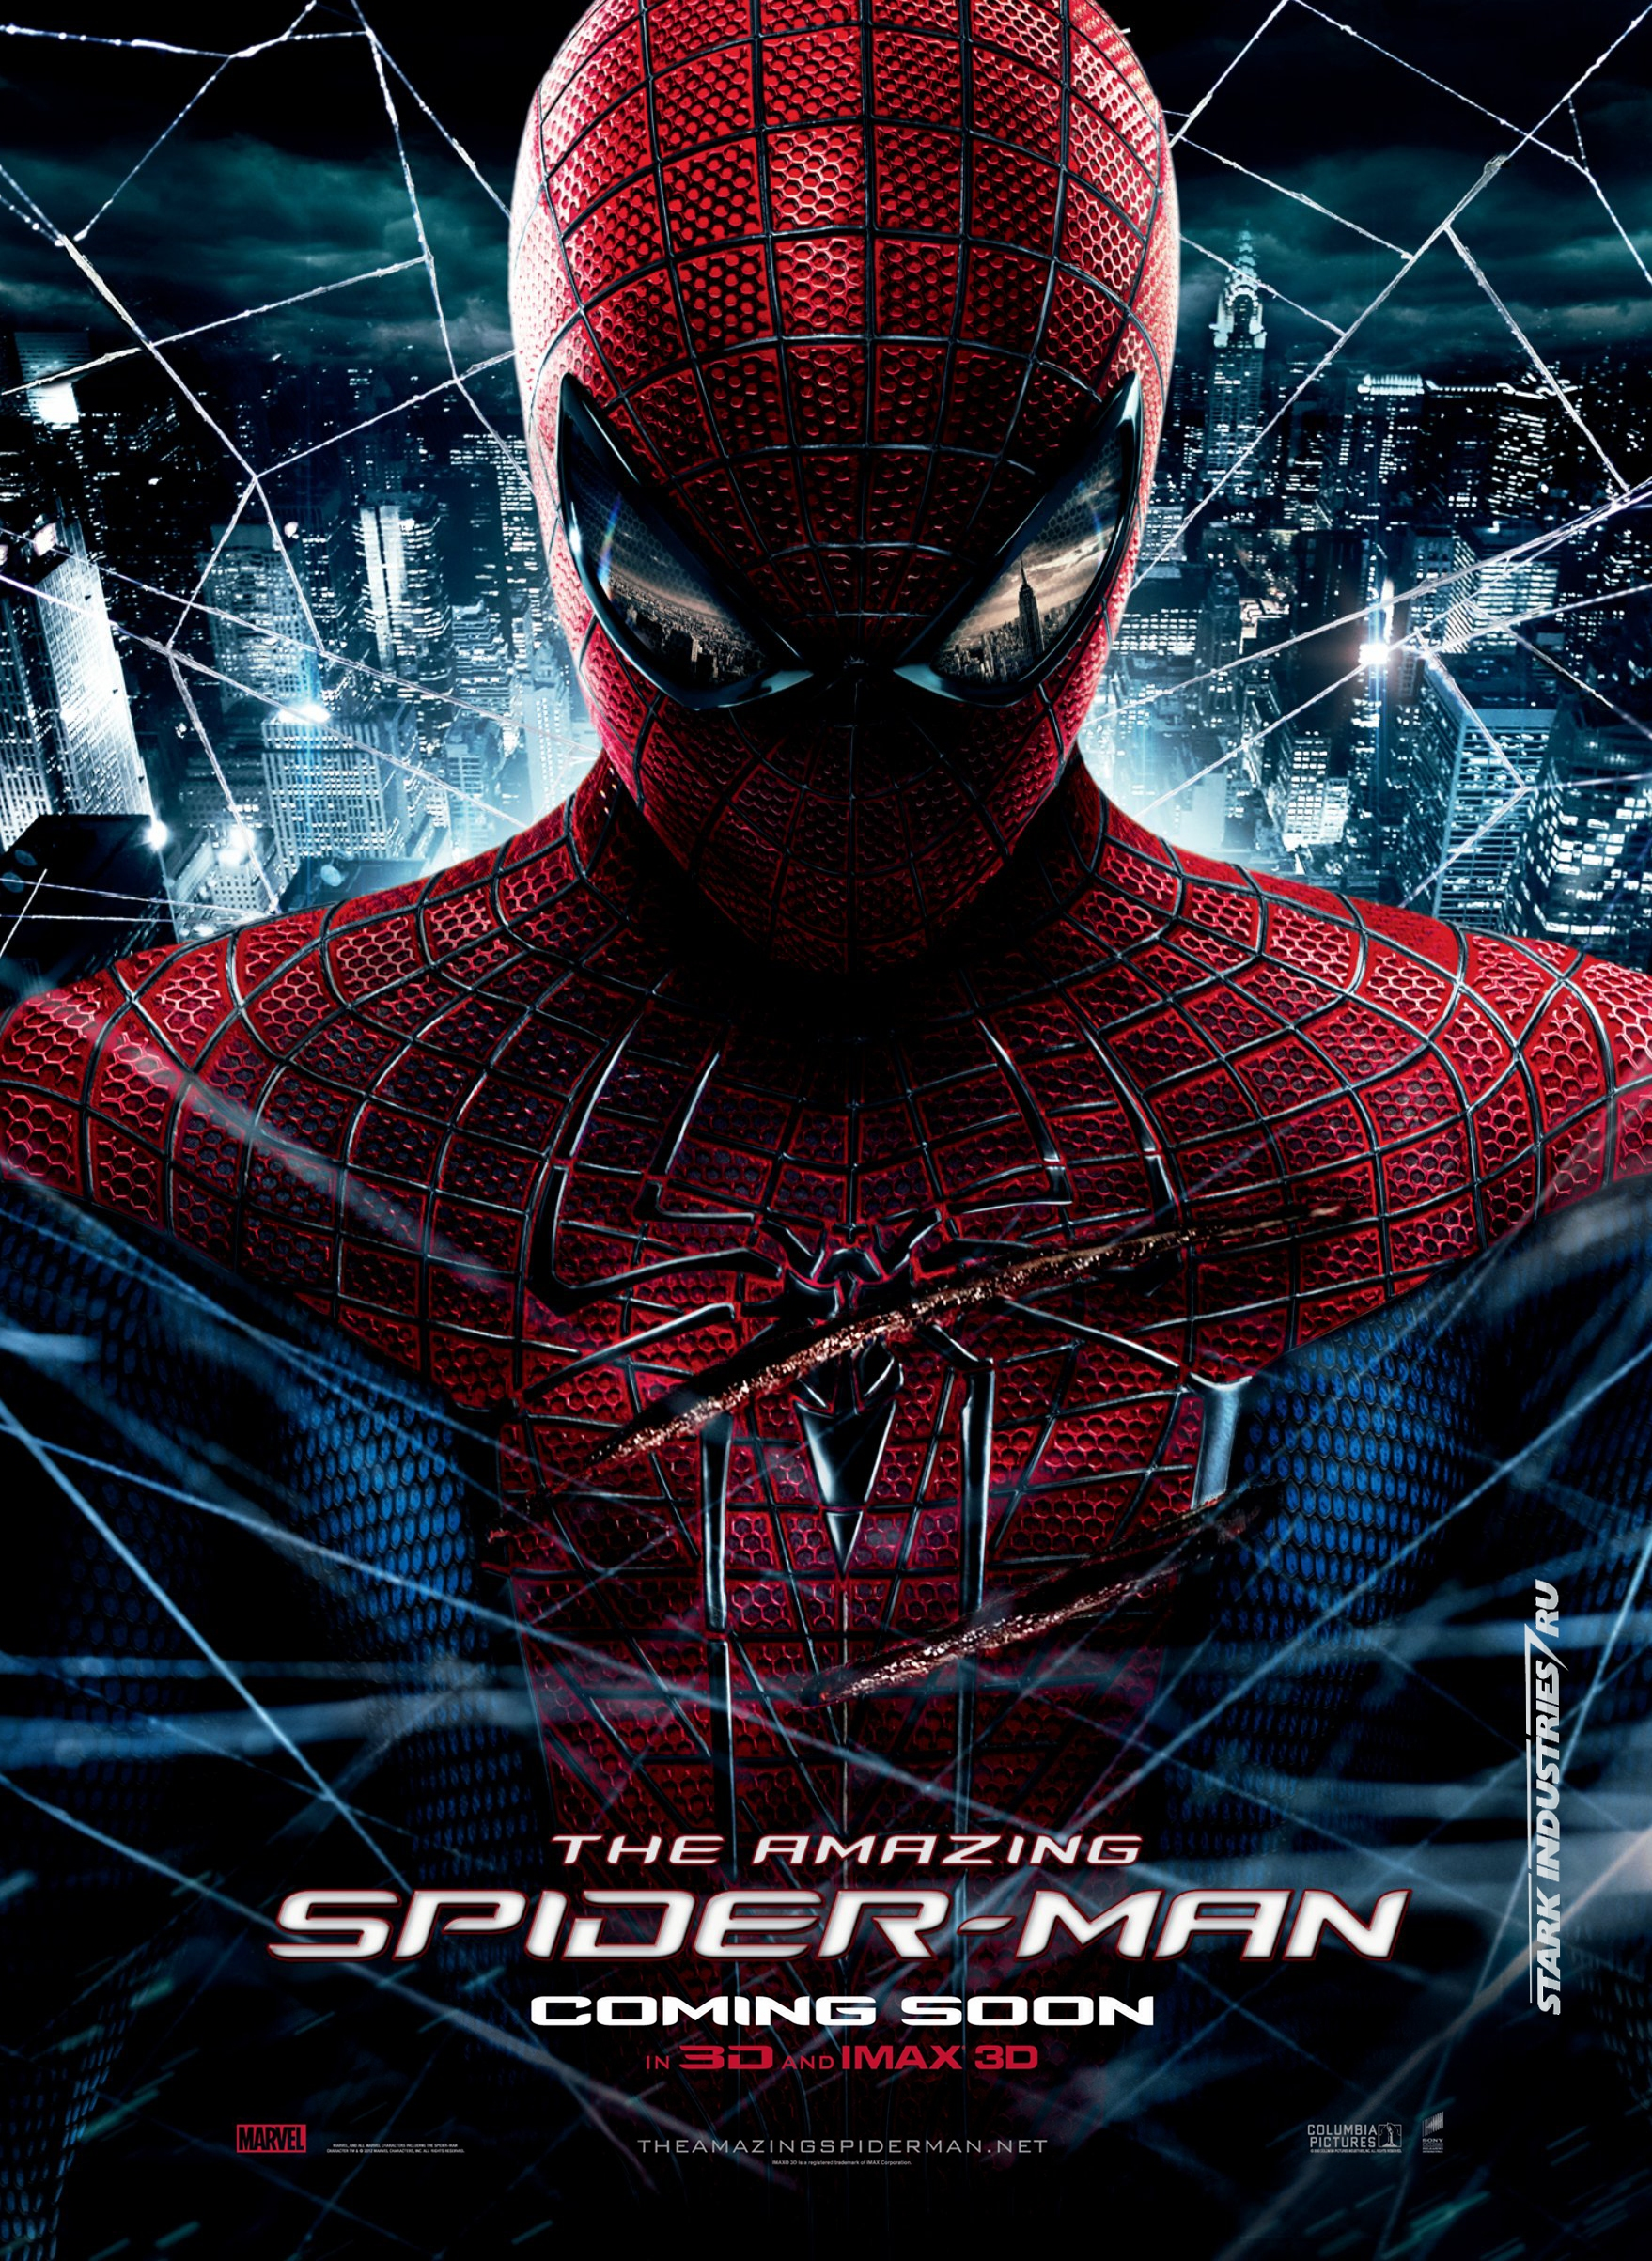 http://collider.com/wp-content/uploads/amazing-spider-man-movie-poster.jpg